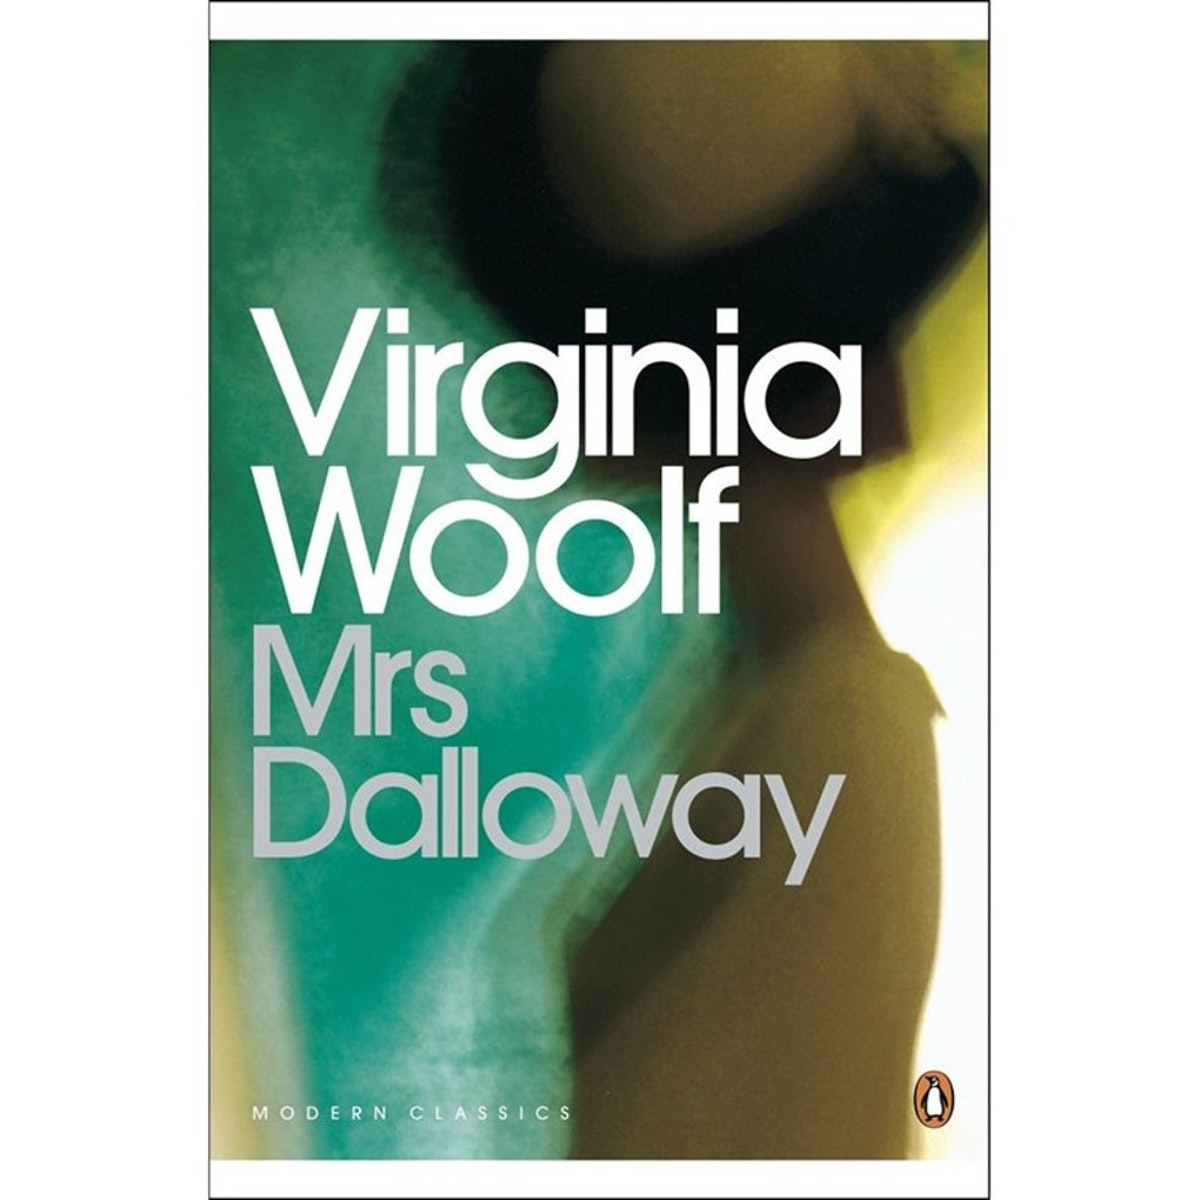 an analysis of suicide of septimus in the work by virginia woolf A humane literary genius is actively at work in a novelist like woolf as a   virginia woolf's mrs dalloway portrays the acute physical and psychic  and as  she dwells on the details of septimus's suicide, the news of which.